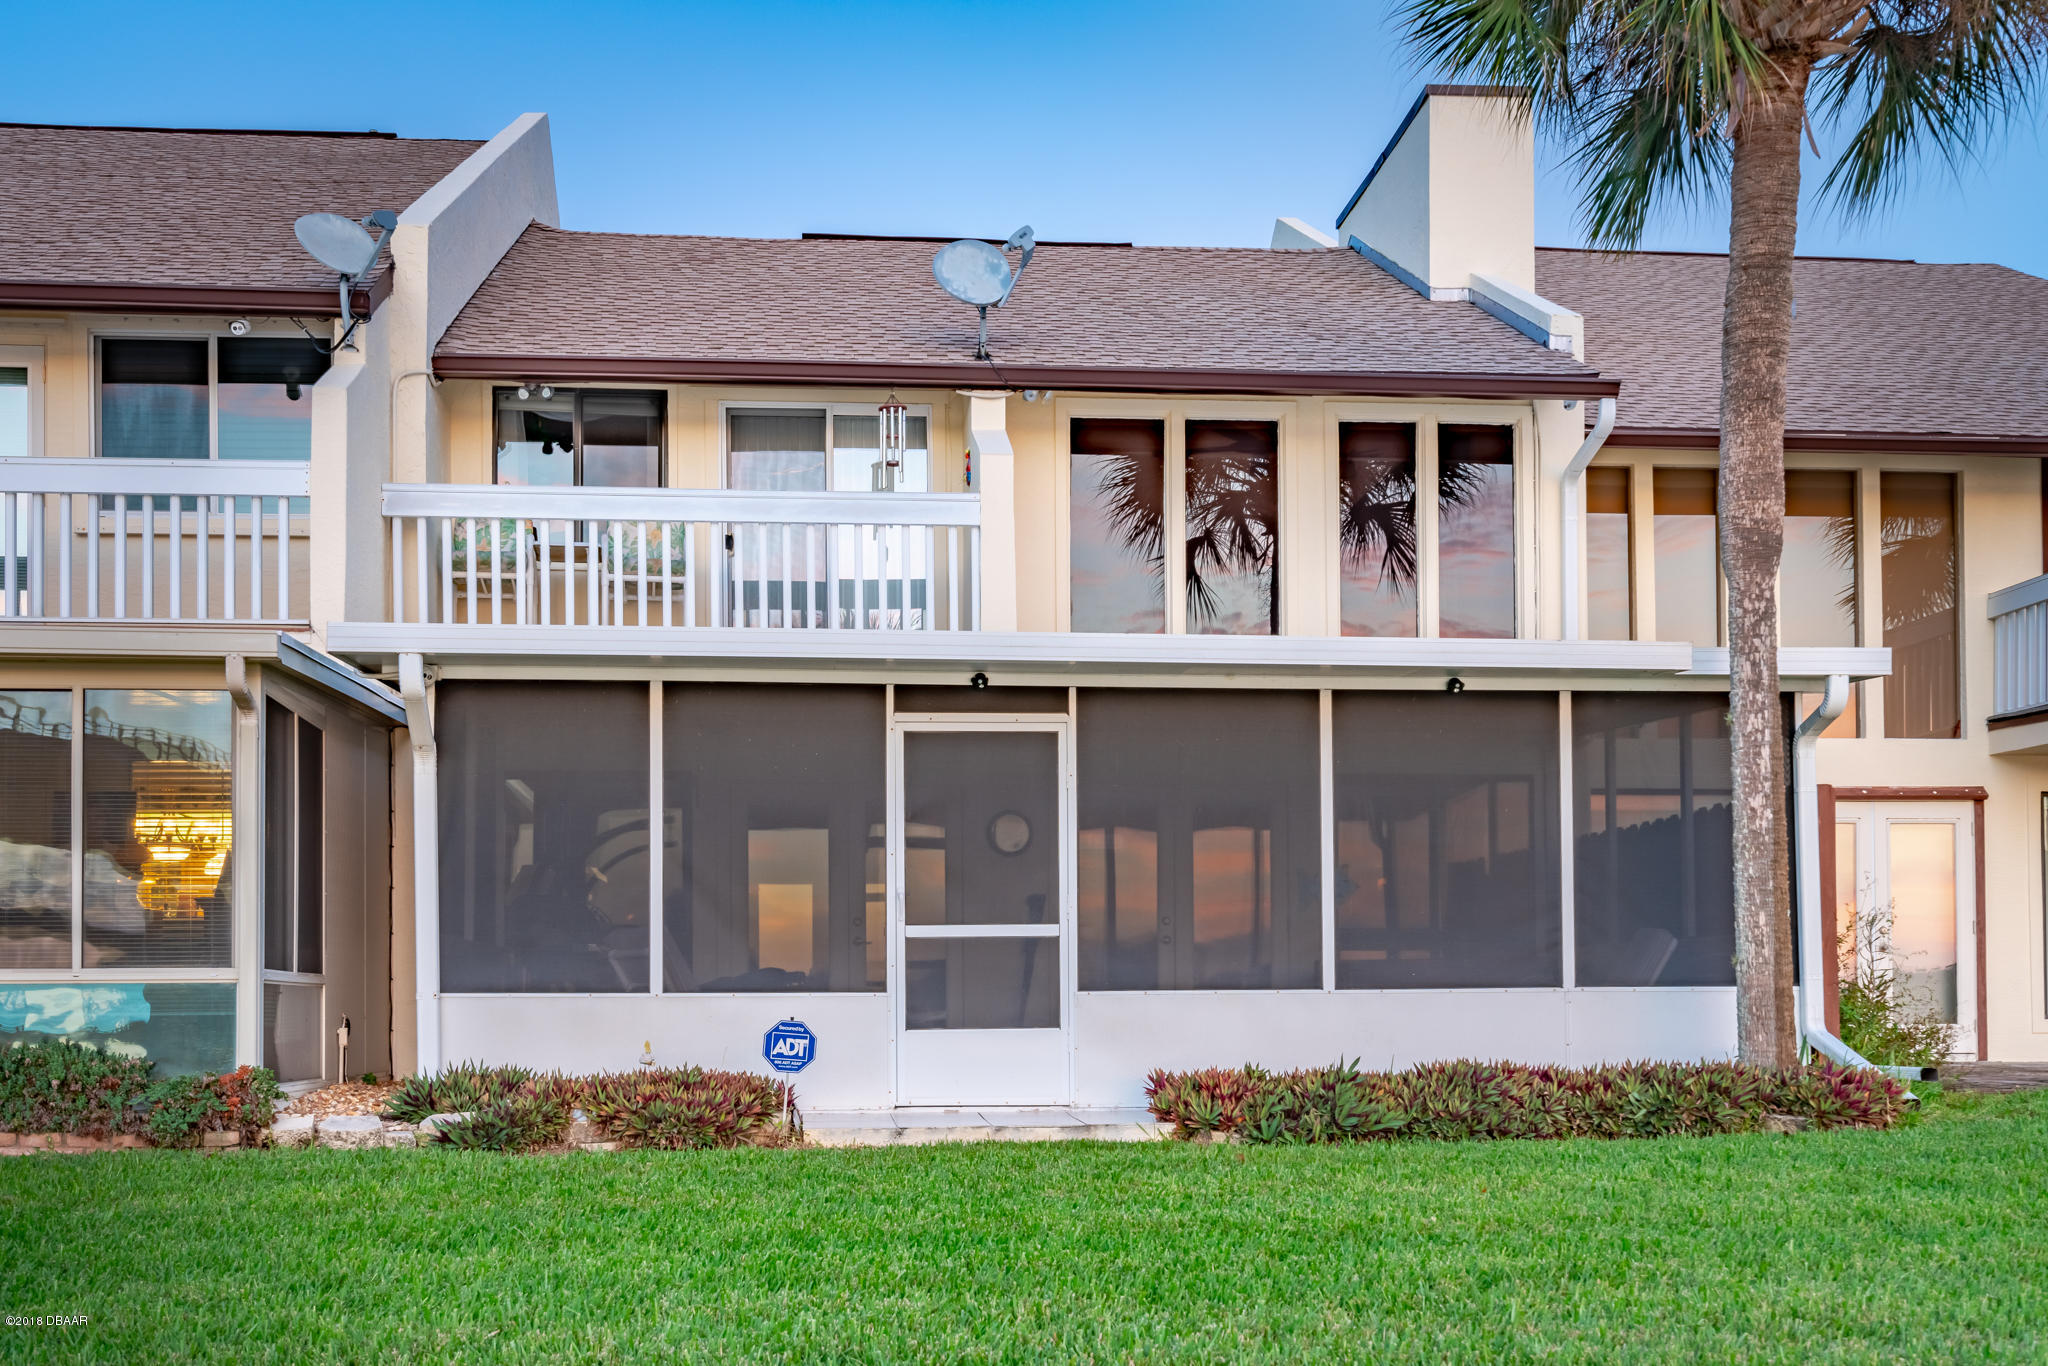 Photo of 437 N Halifax Avenue #100, Daytona Beach, FL 32118